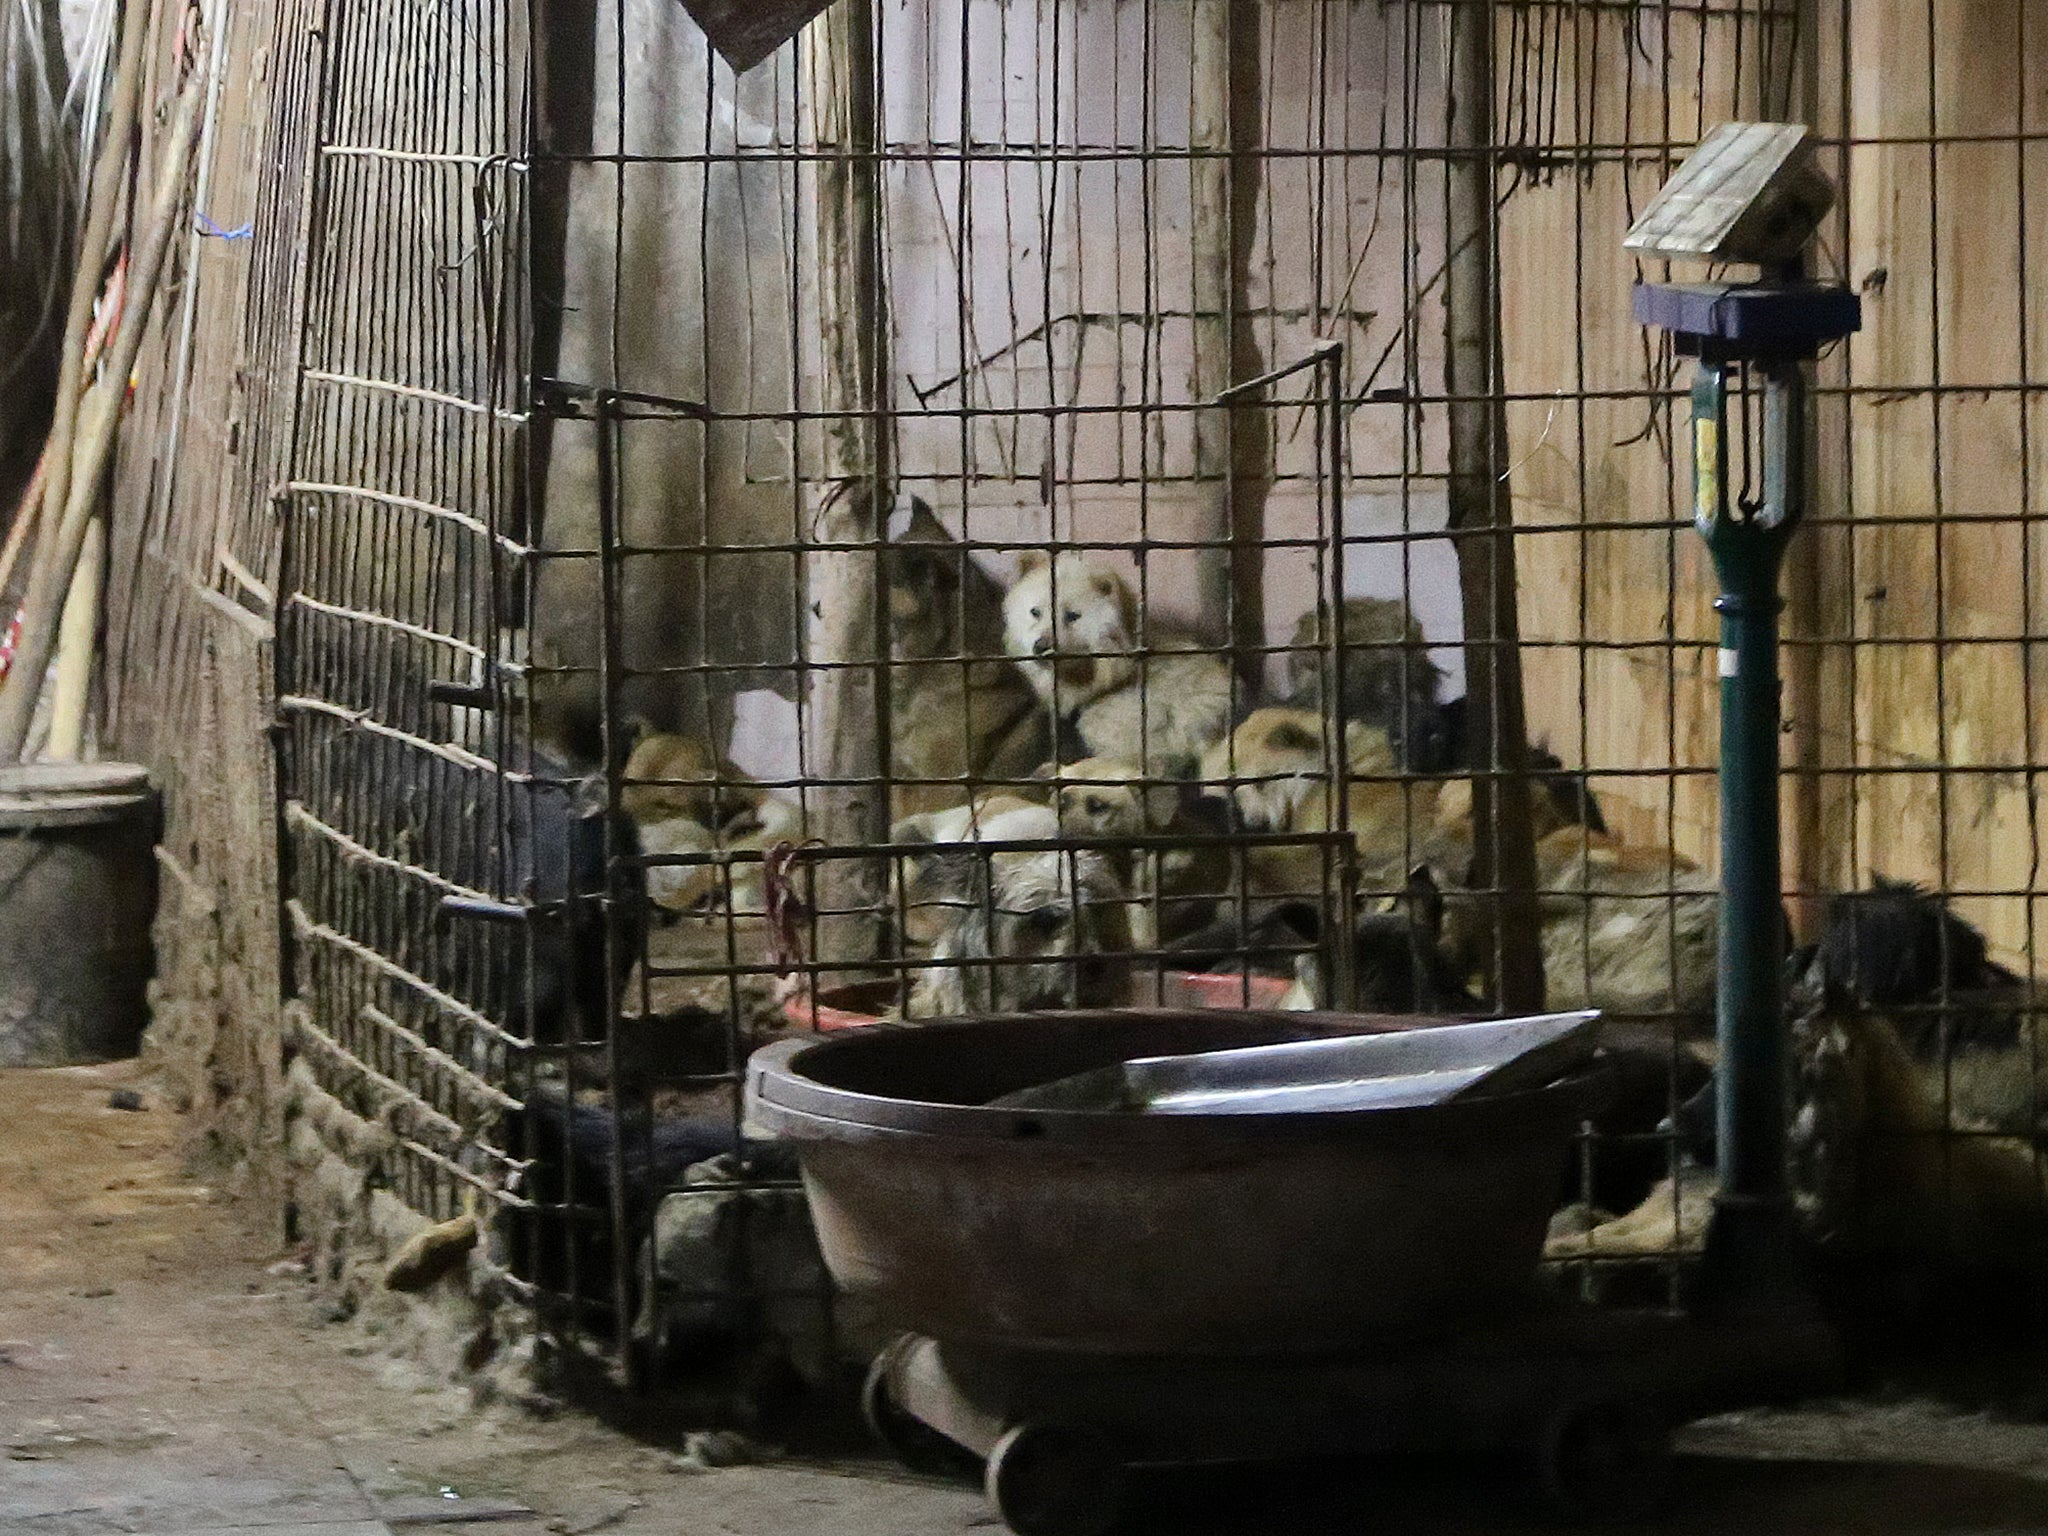 Dogs held at slaughterhouse, Yulin